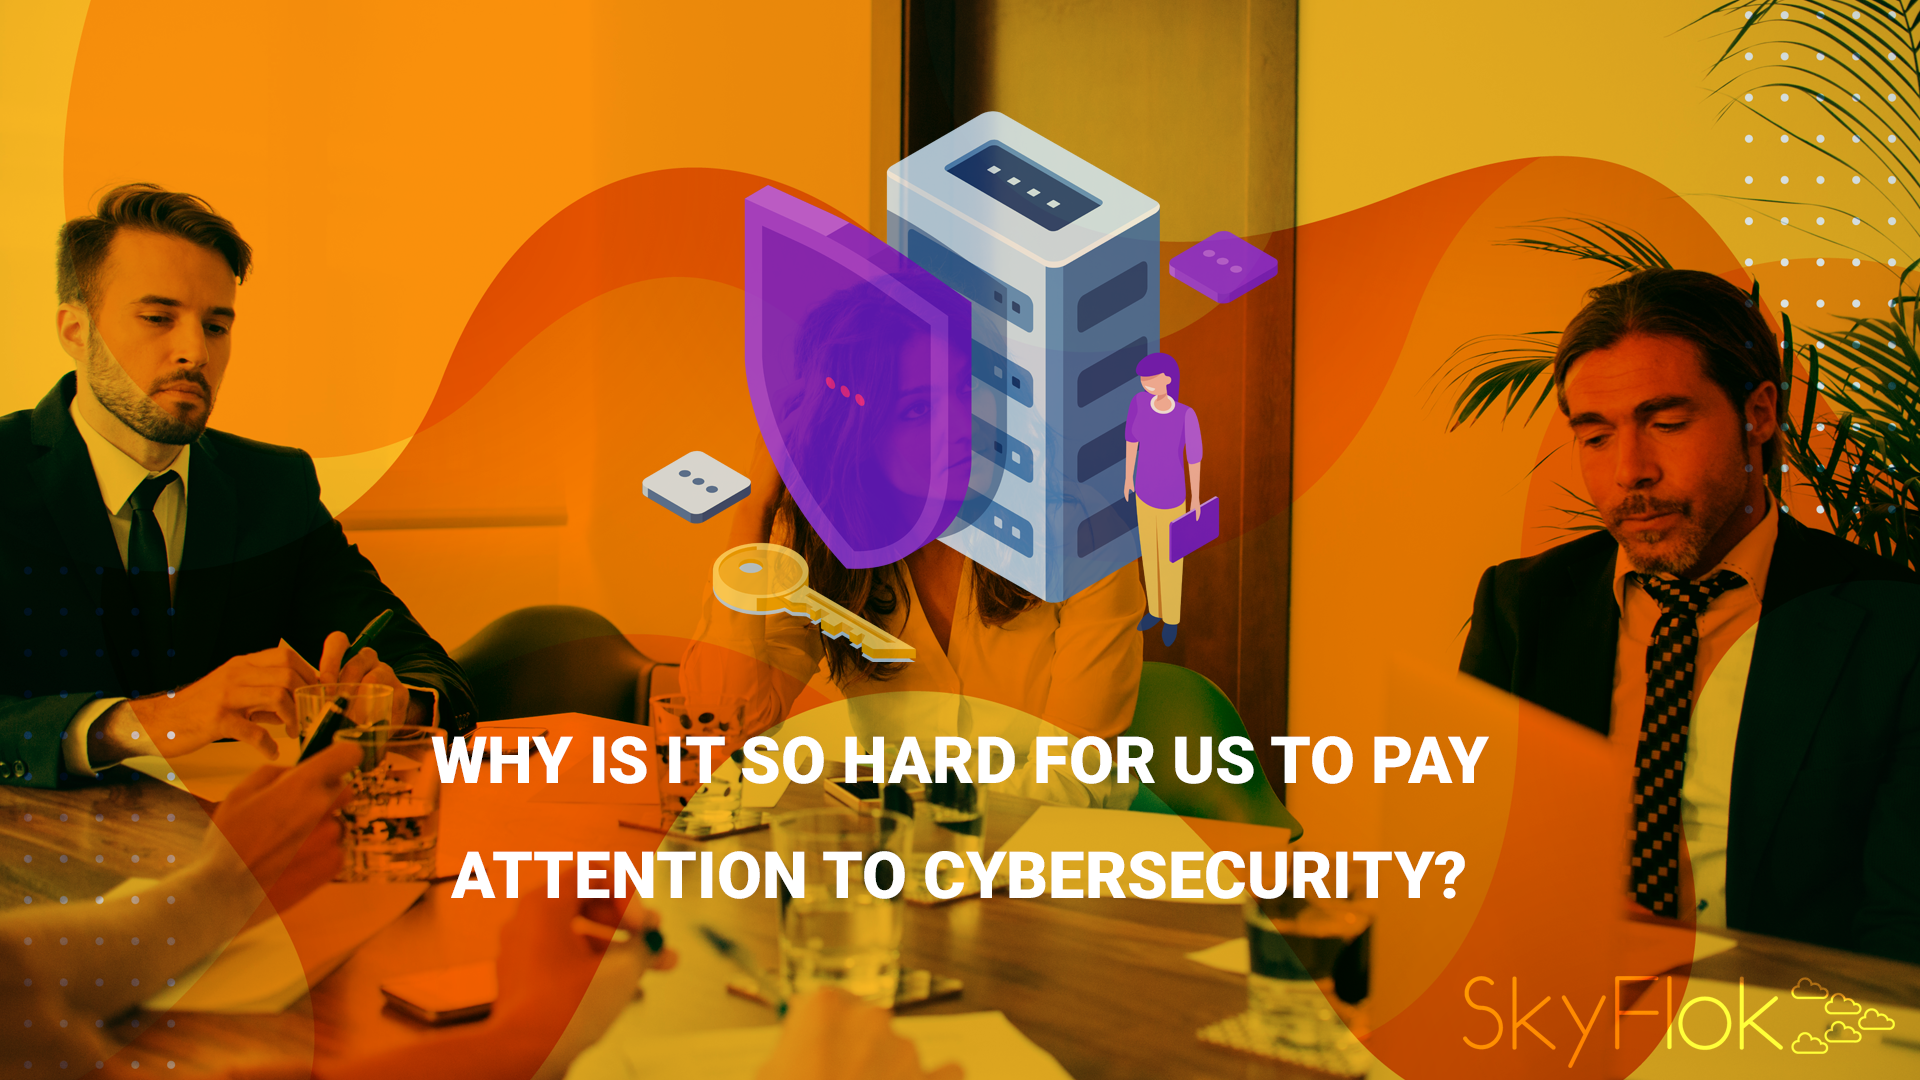 Why is it so hard for us to pay attention to cybersecurity?